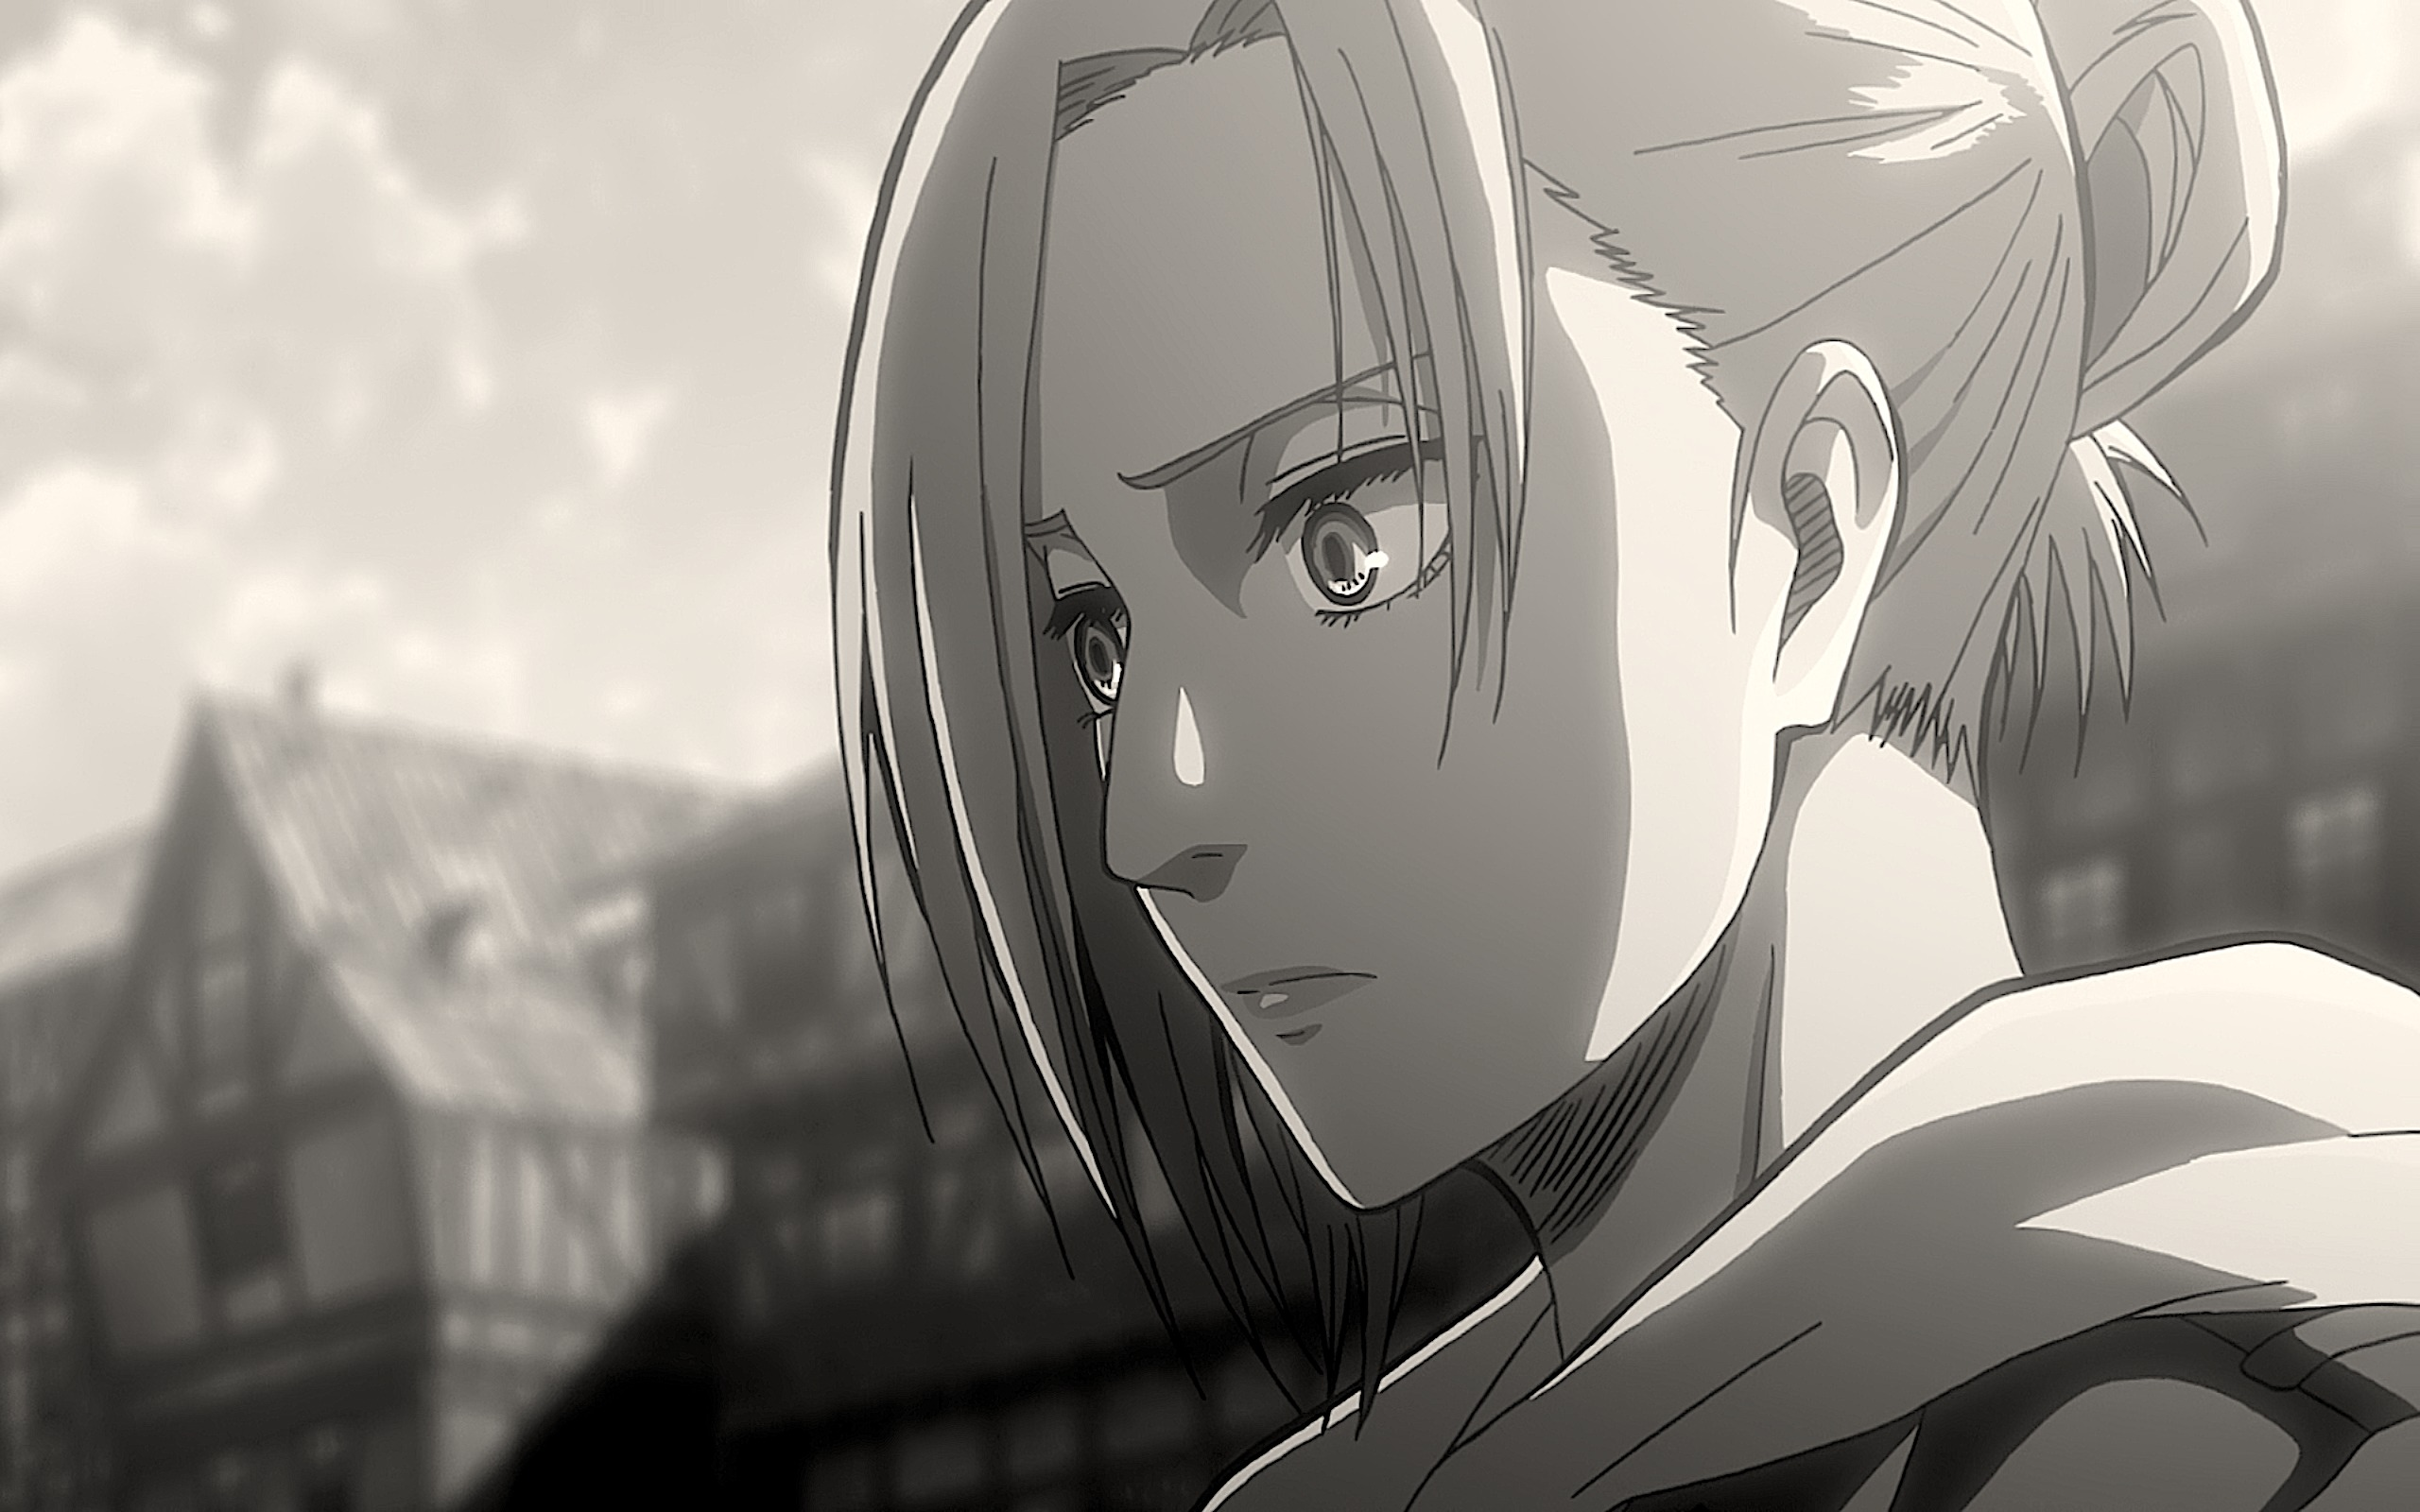 Download Wallpaper From Anime Attack On Titan With Tags Black Amp White Linux Annie Leonhart Shingeki No Kyojin